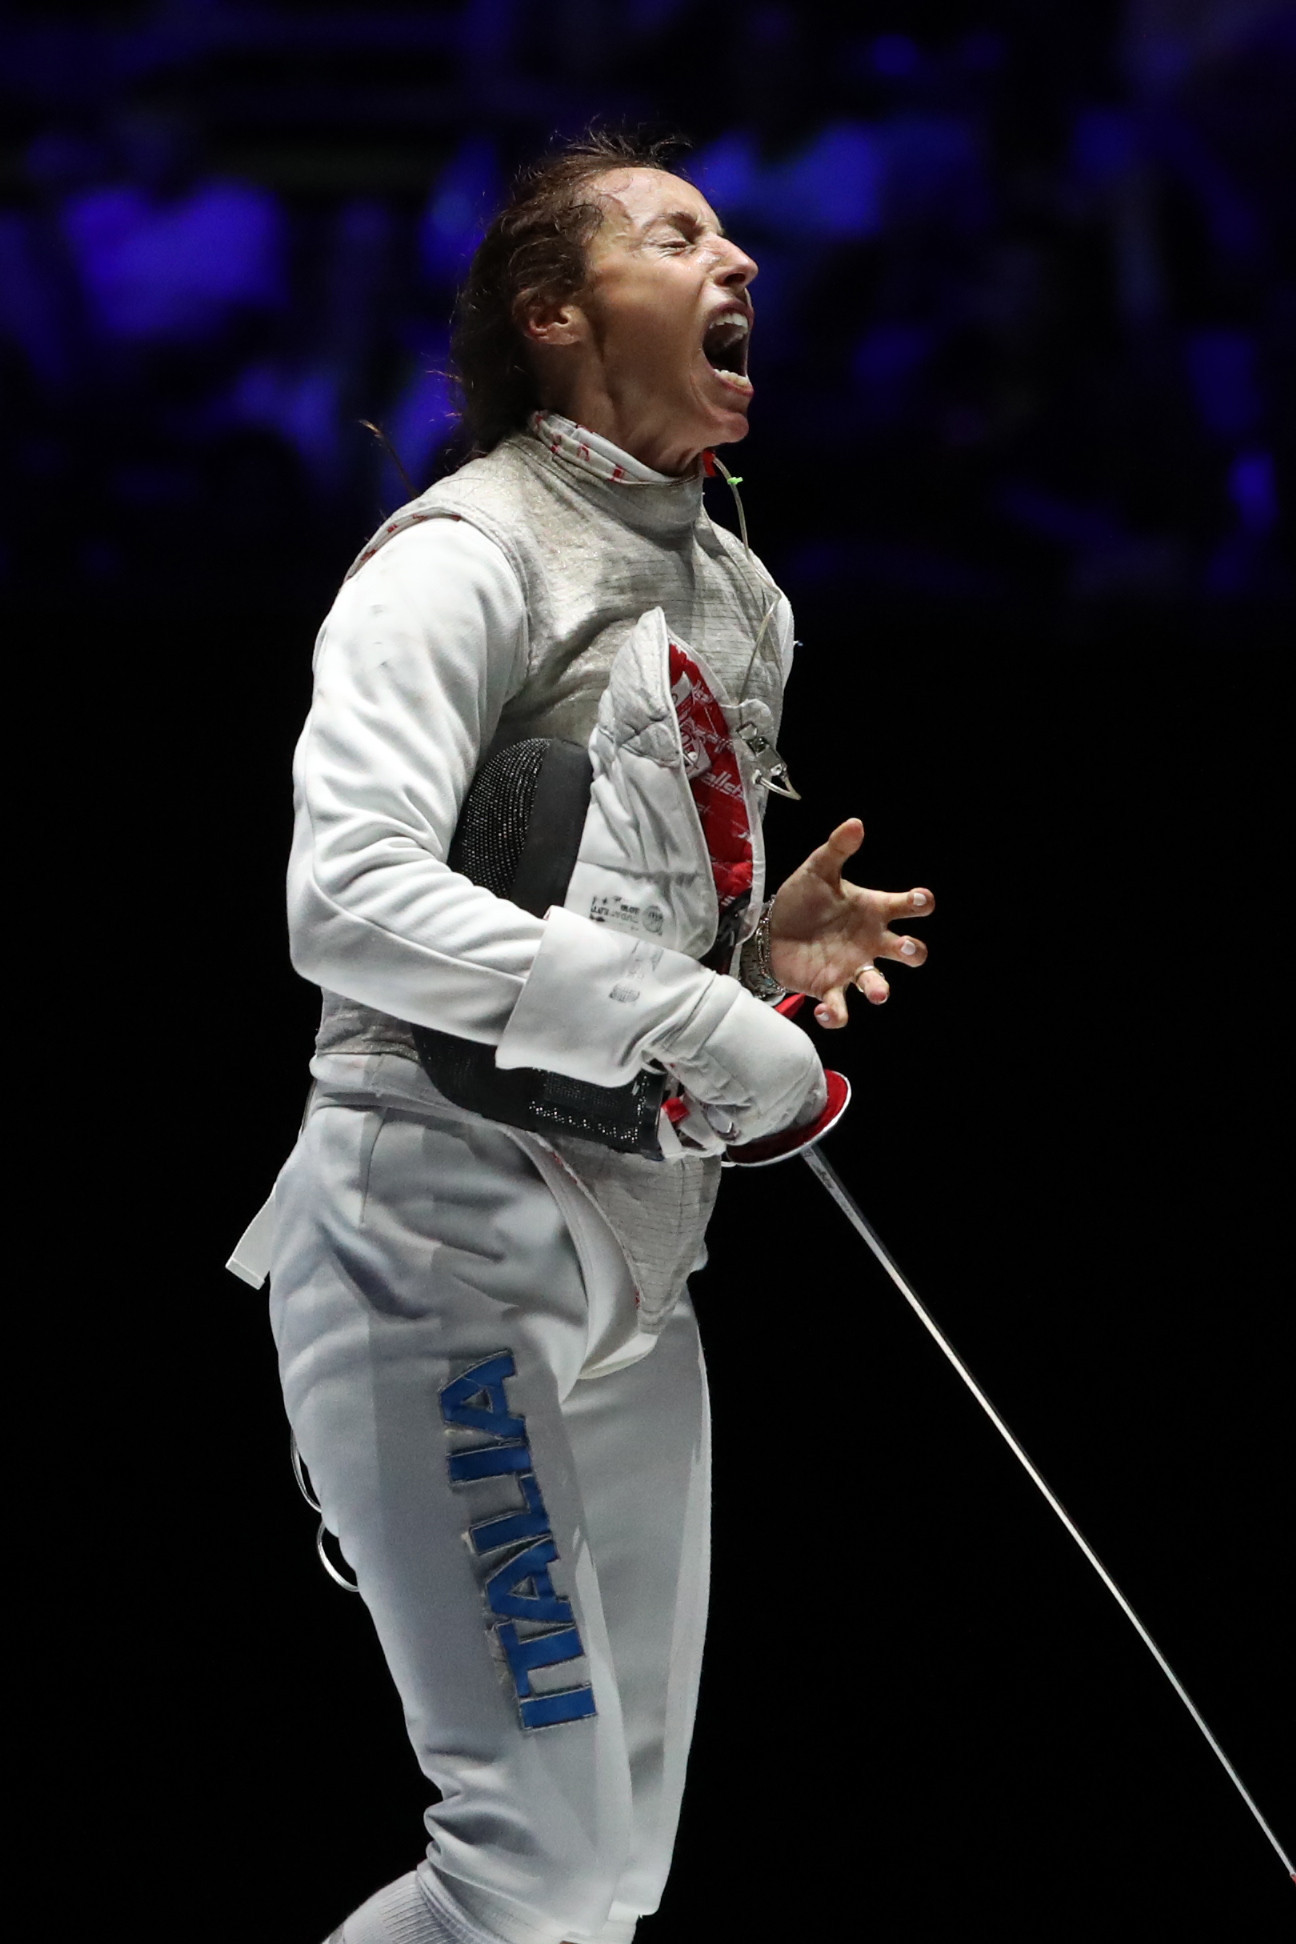 Italians impress at three World Cup fencing events